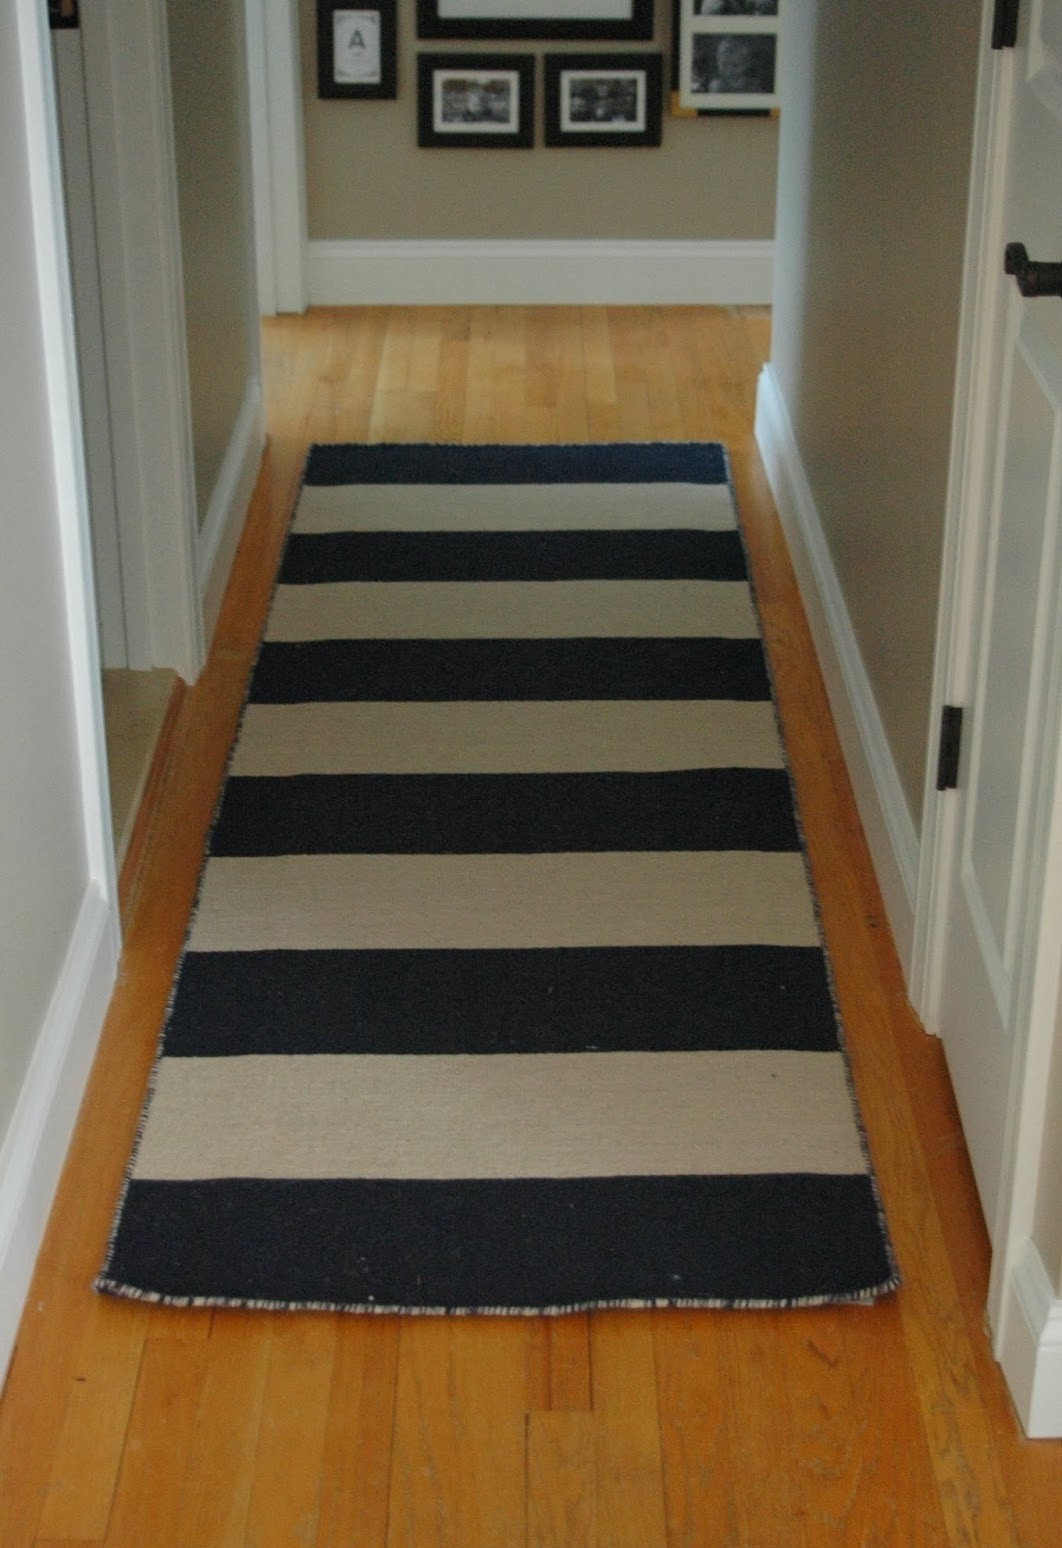 Black And White Striped Runner Rug Creative Rugs Decoration Intended For Runner Carpets Hallway (#10 of 20)